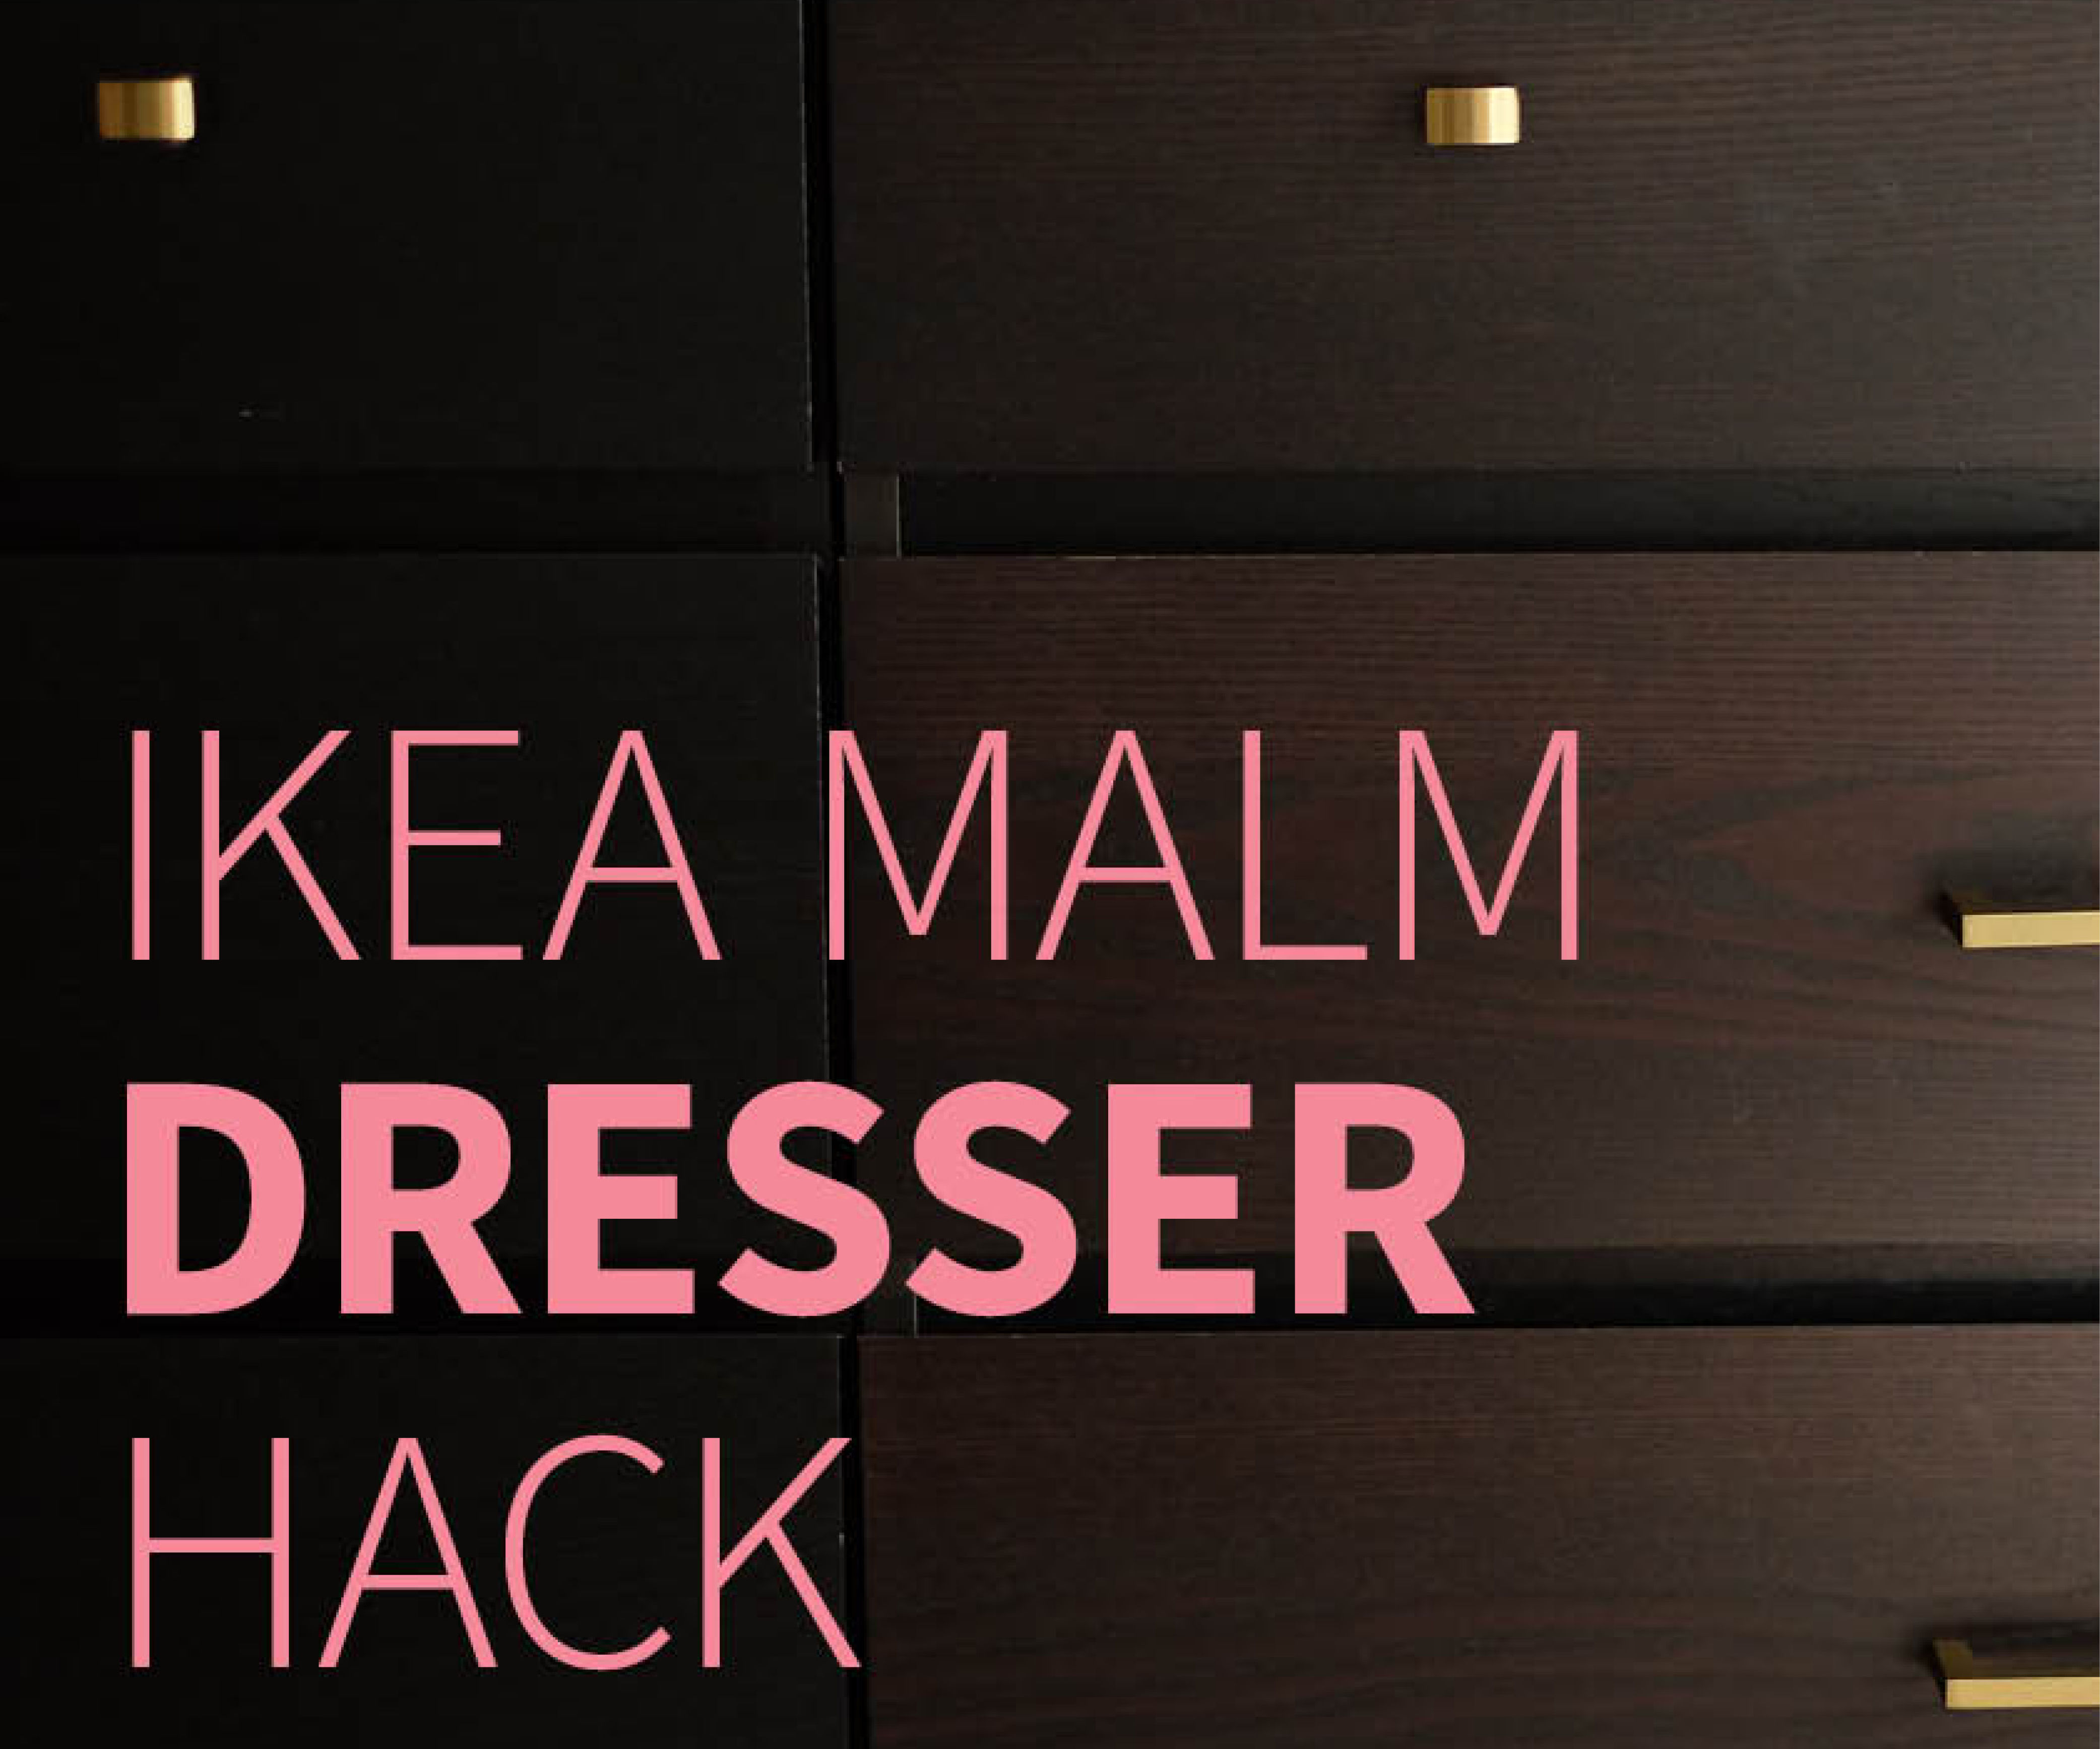 Ikea Malm Dresser Hack 5 Steps With Pictures Instructables